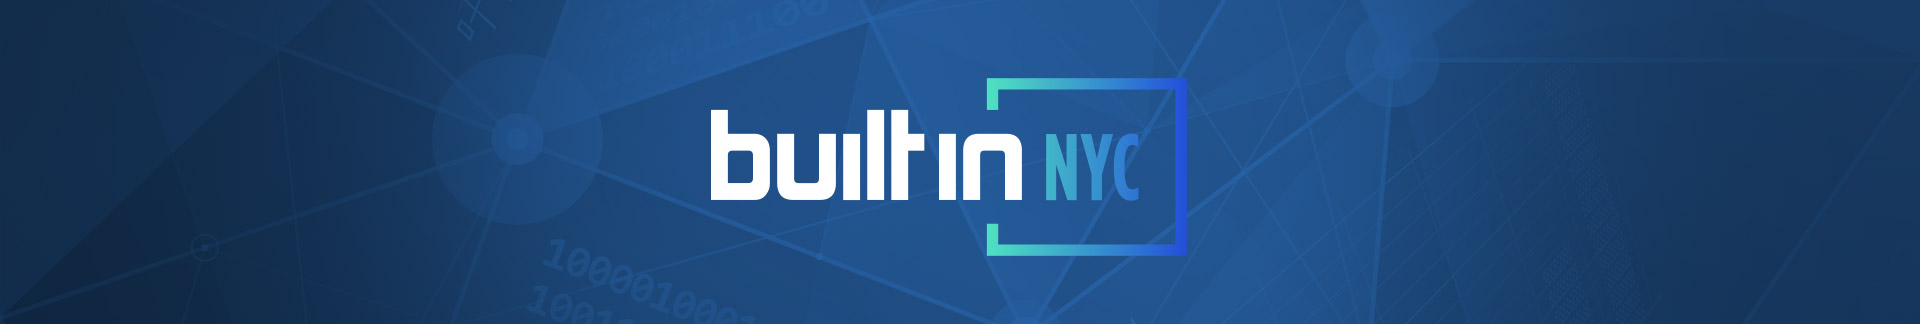 Built in NYC news banner